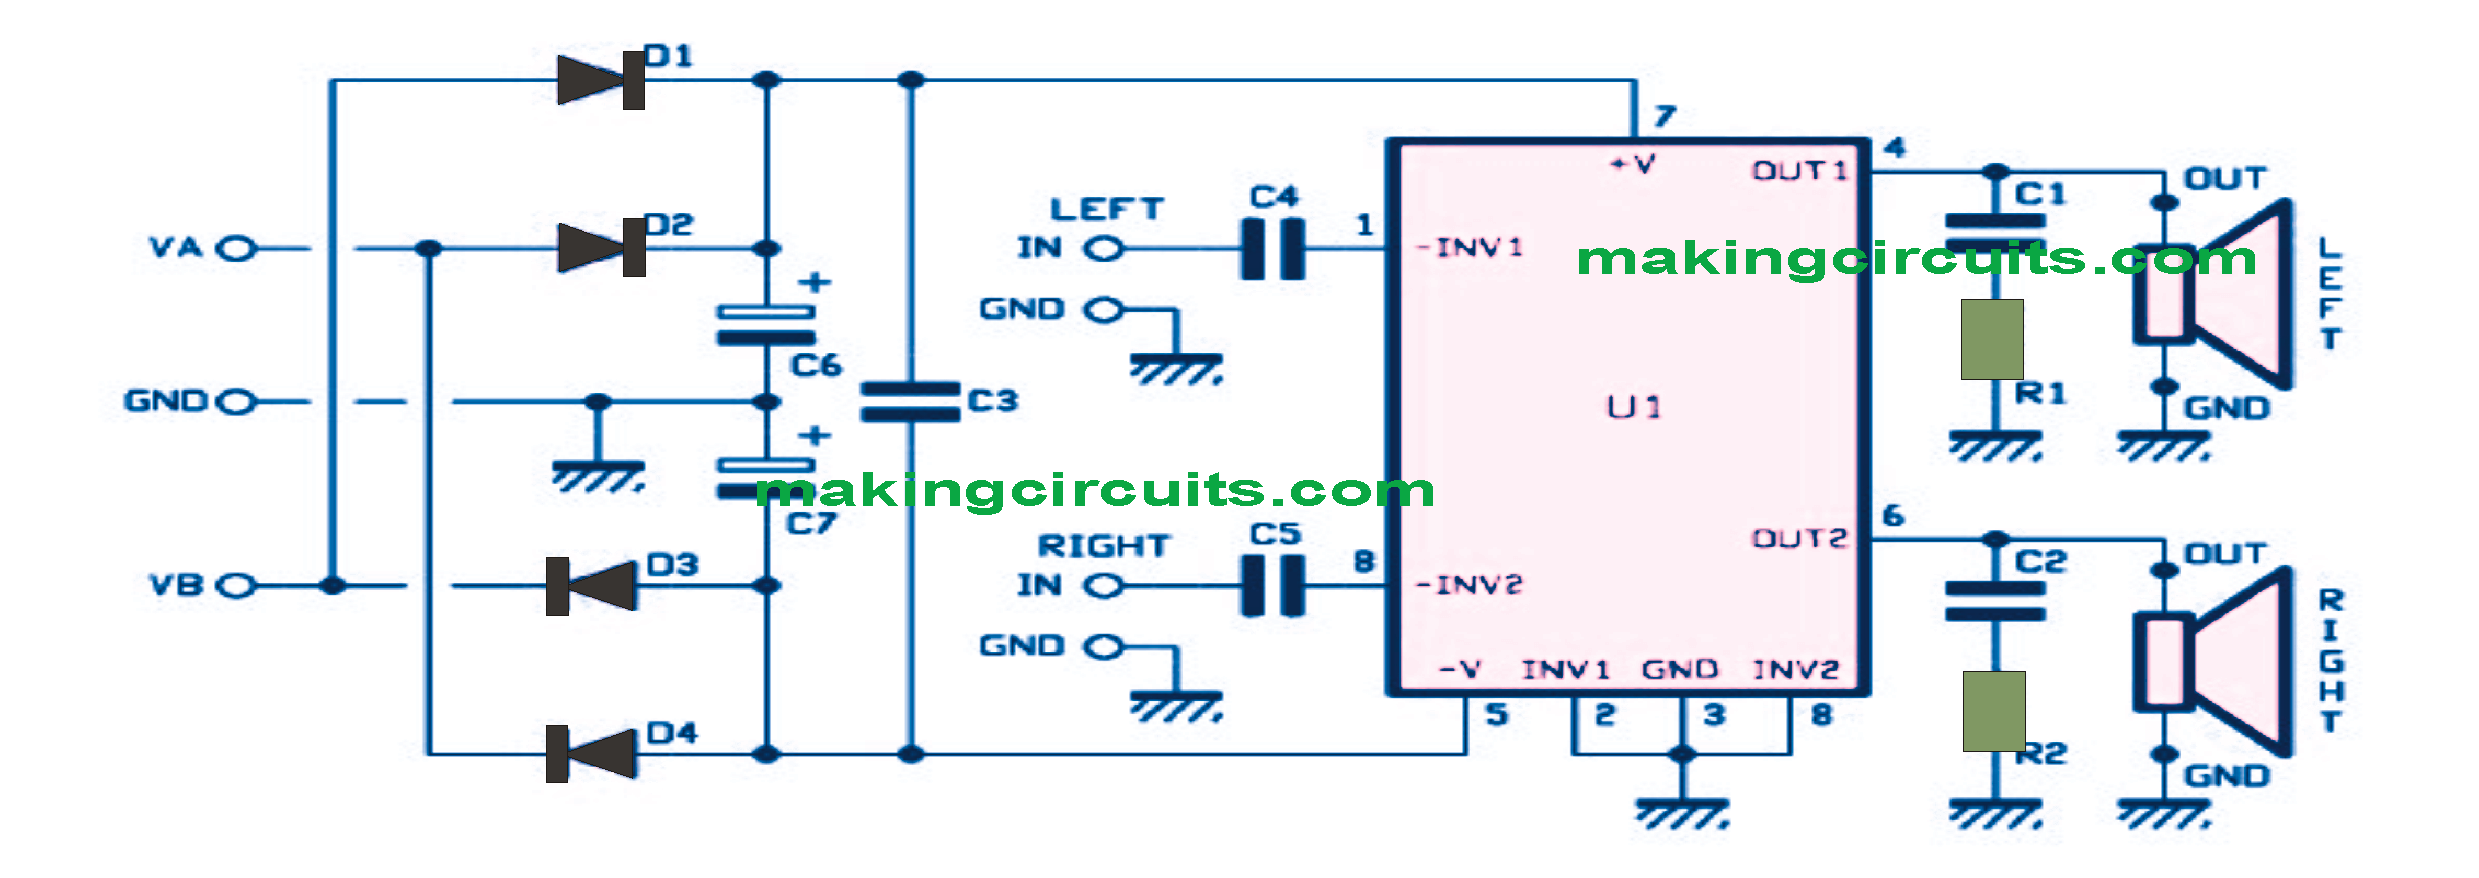 30 Watt Stereo Amplifier Circuit Using IC TDA1521